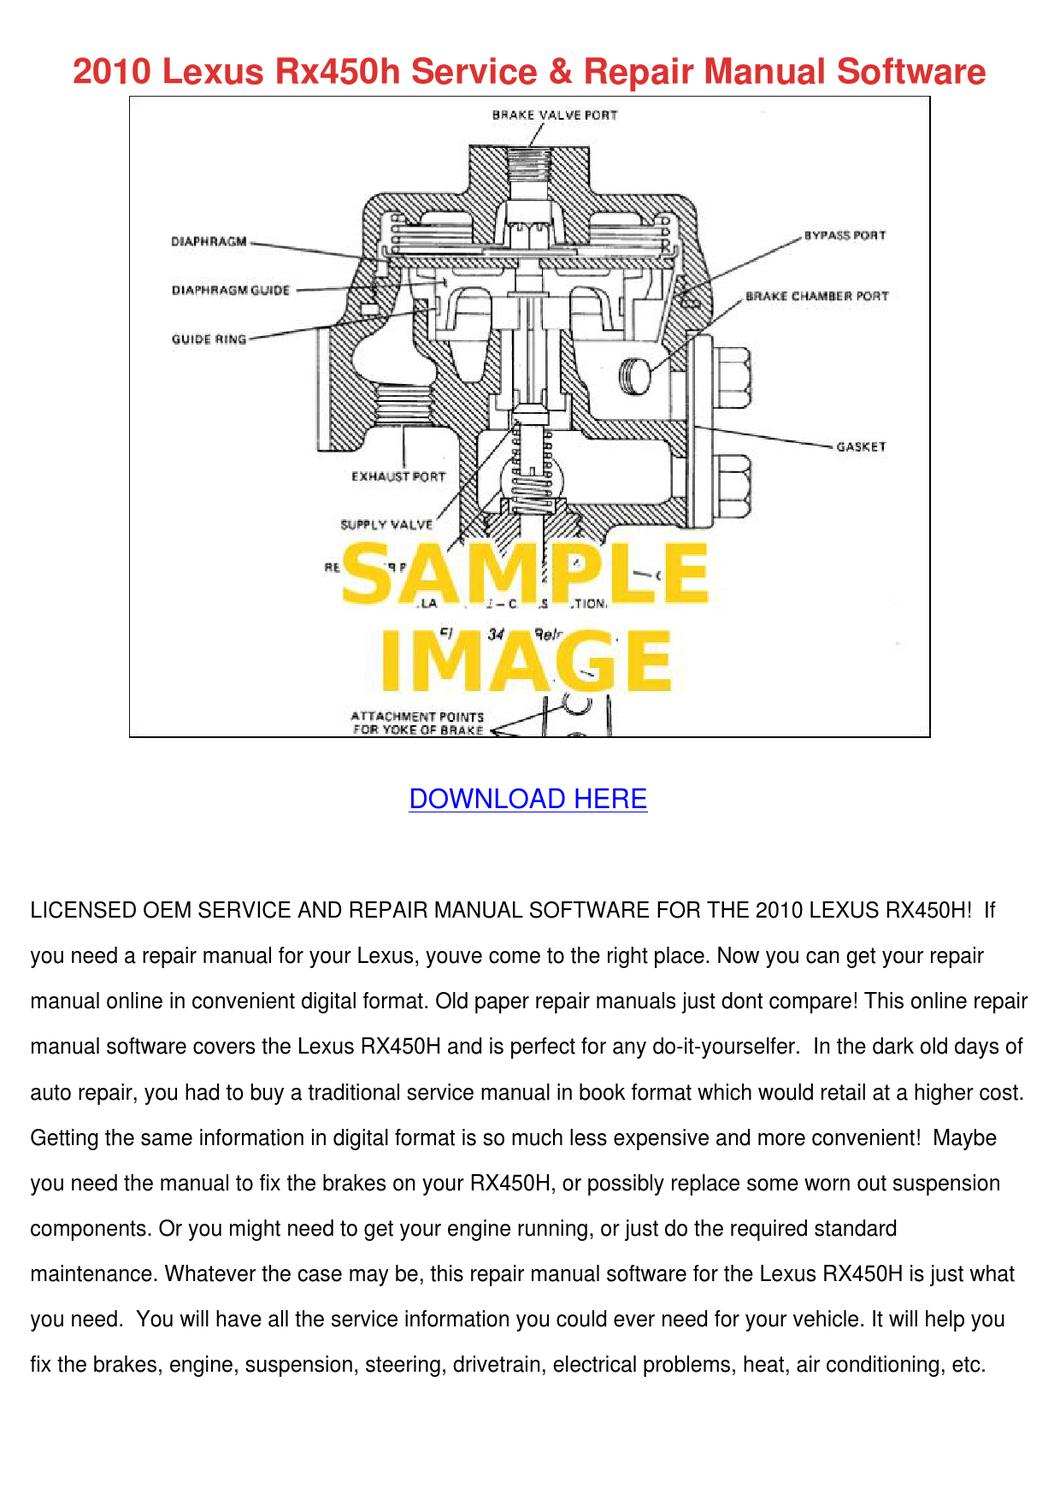 Lexus Sc300 Ac Repair Manual 5g Celica Wiring Diagram Array 2010 Rx450h Service Softw By Penninewell Issuu Rh